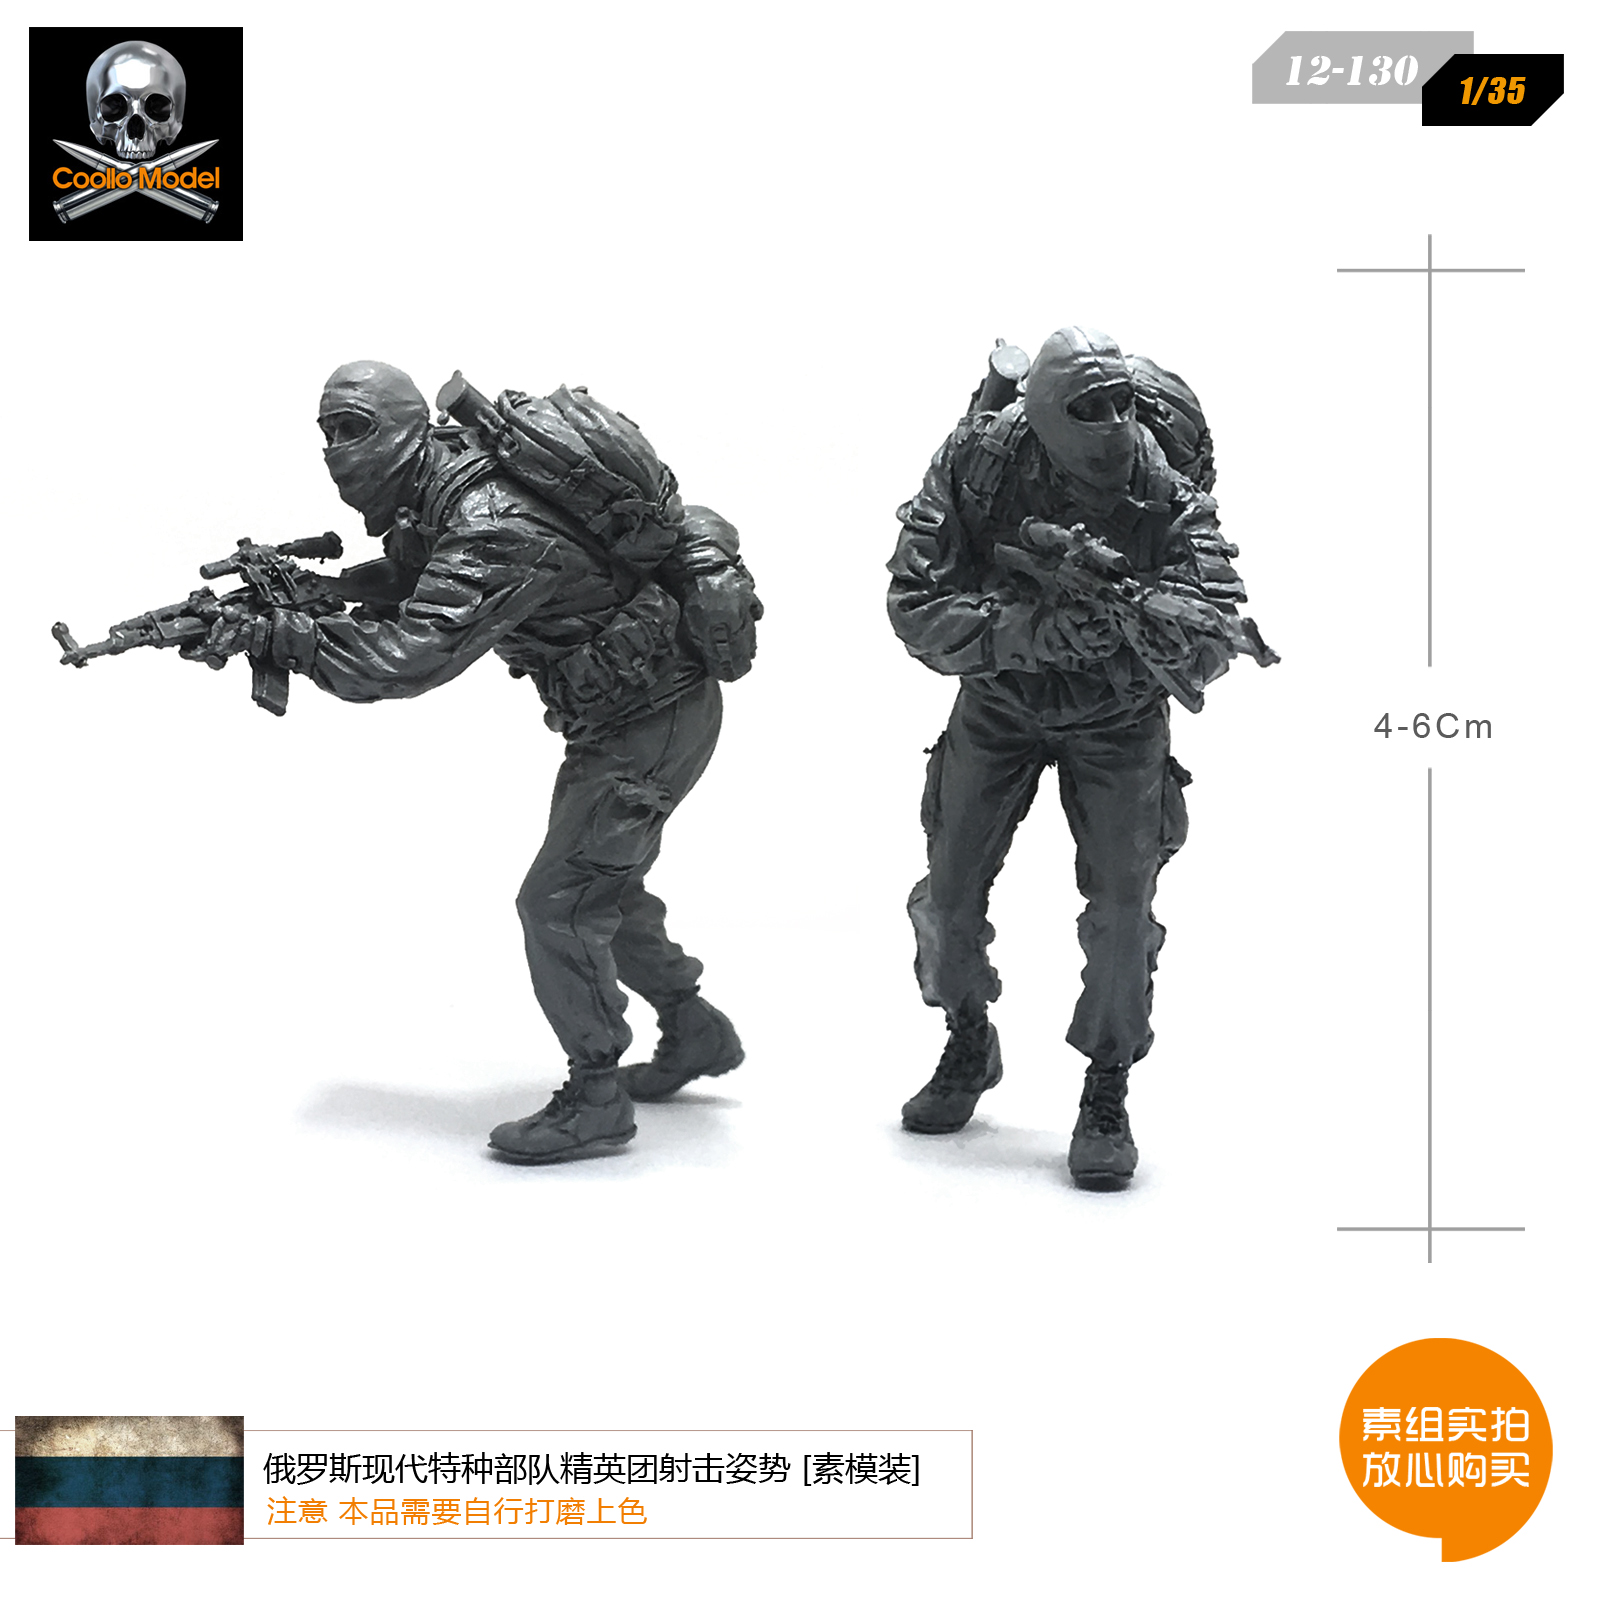 1/35 Resin Soldier Model  For Shooting Posture Of Elite Regiment Of Modern Russian Special Forces Self-assembled 12-130